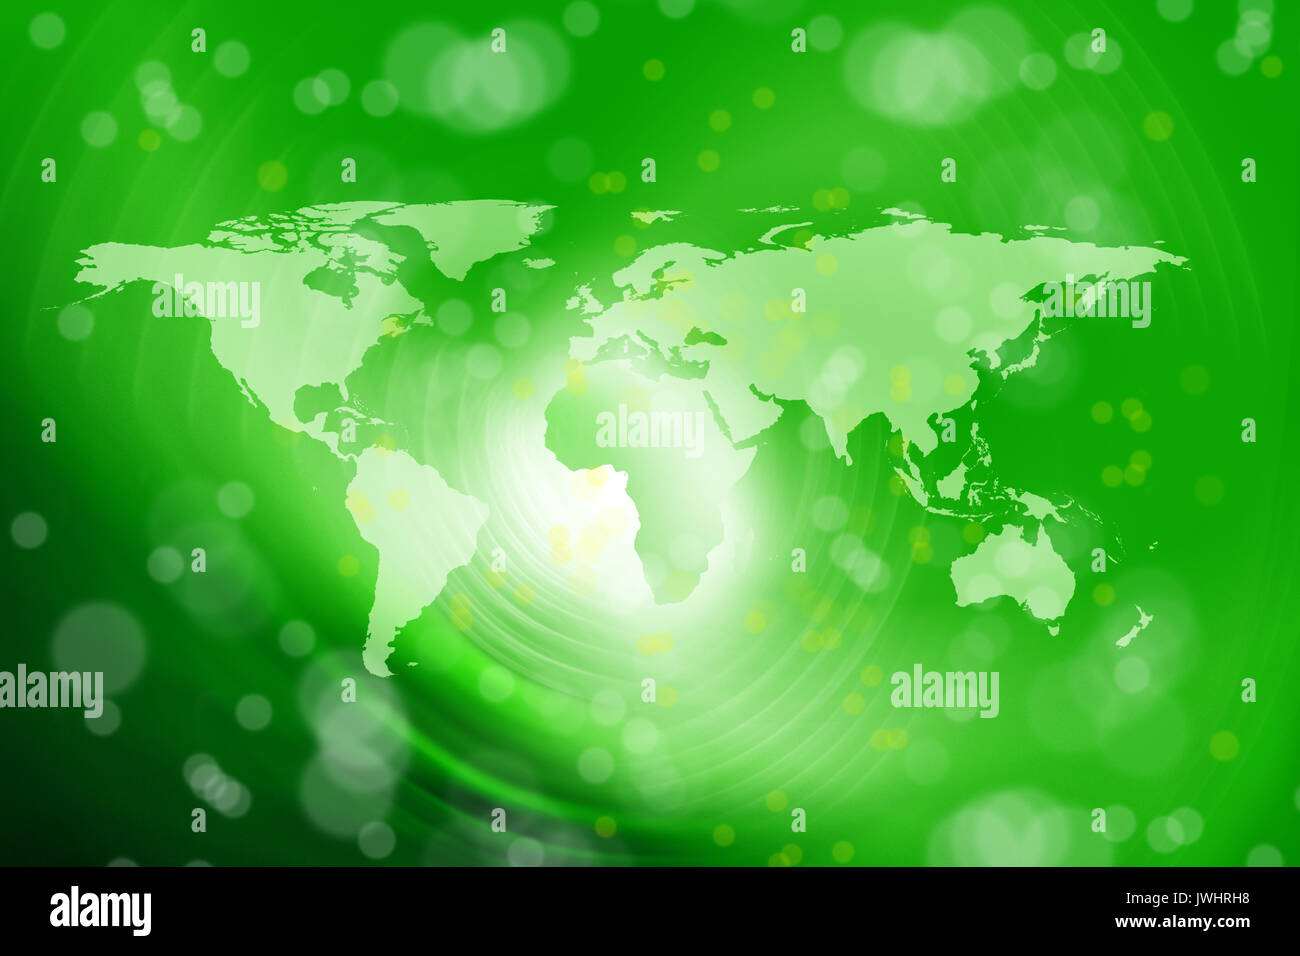 Background image of abstract lights and world map manipulation background image of abstract lights and world map manipulation nasa world map image layered and used nasa httpsflickrphotosgs gumiabroncs Images